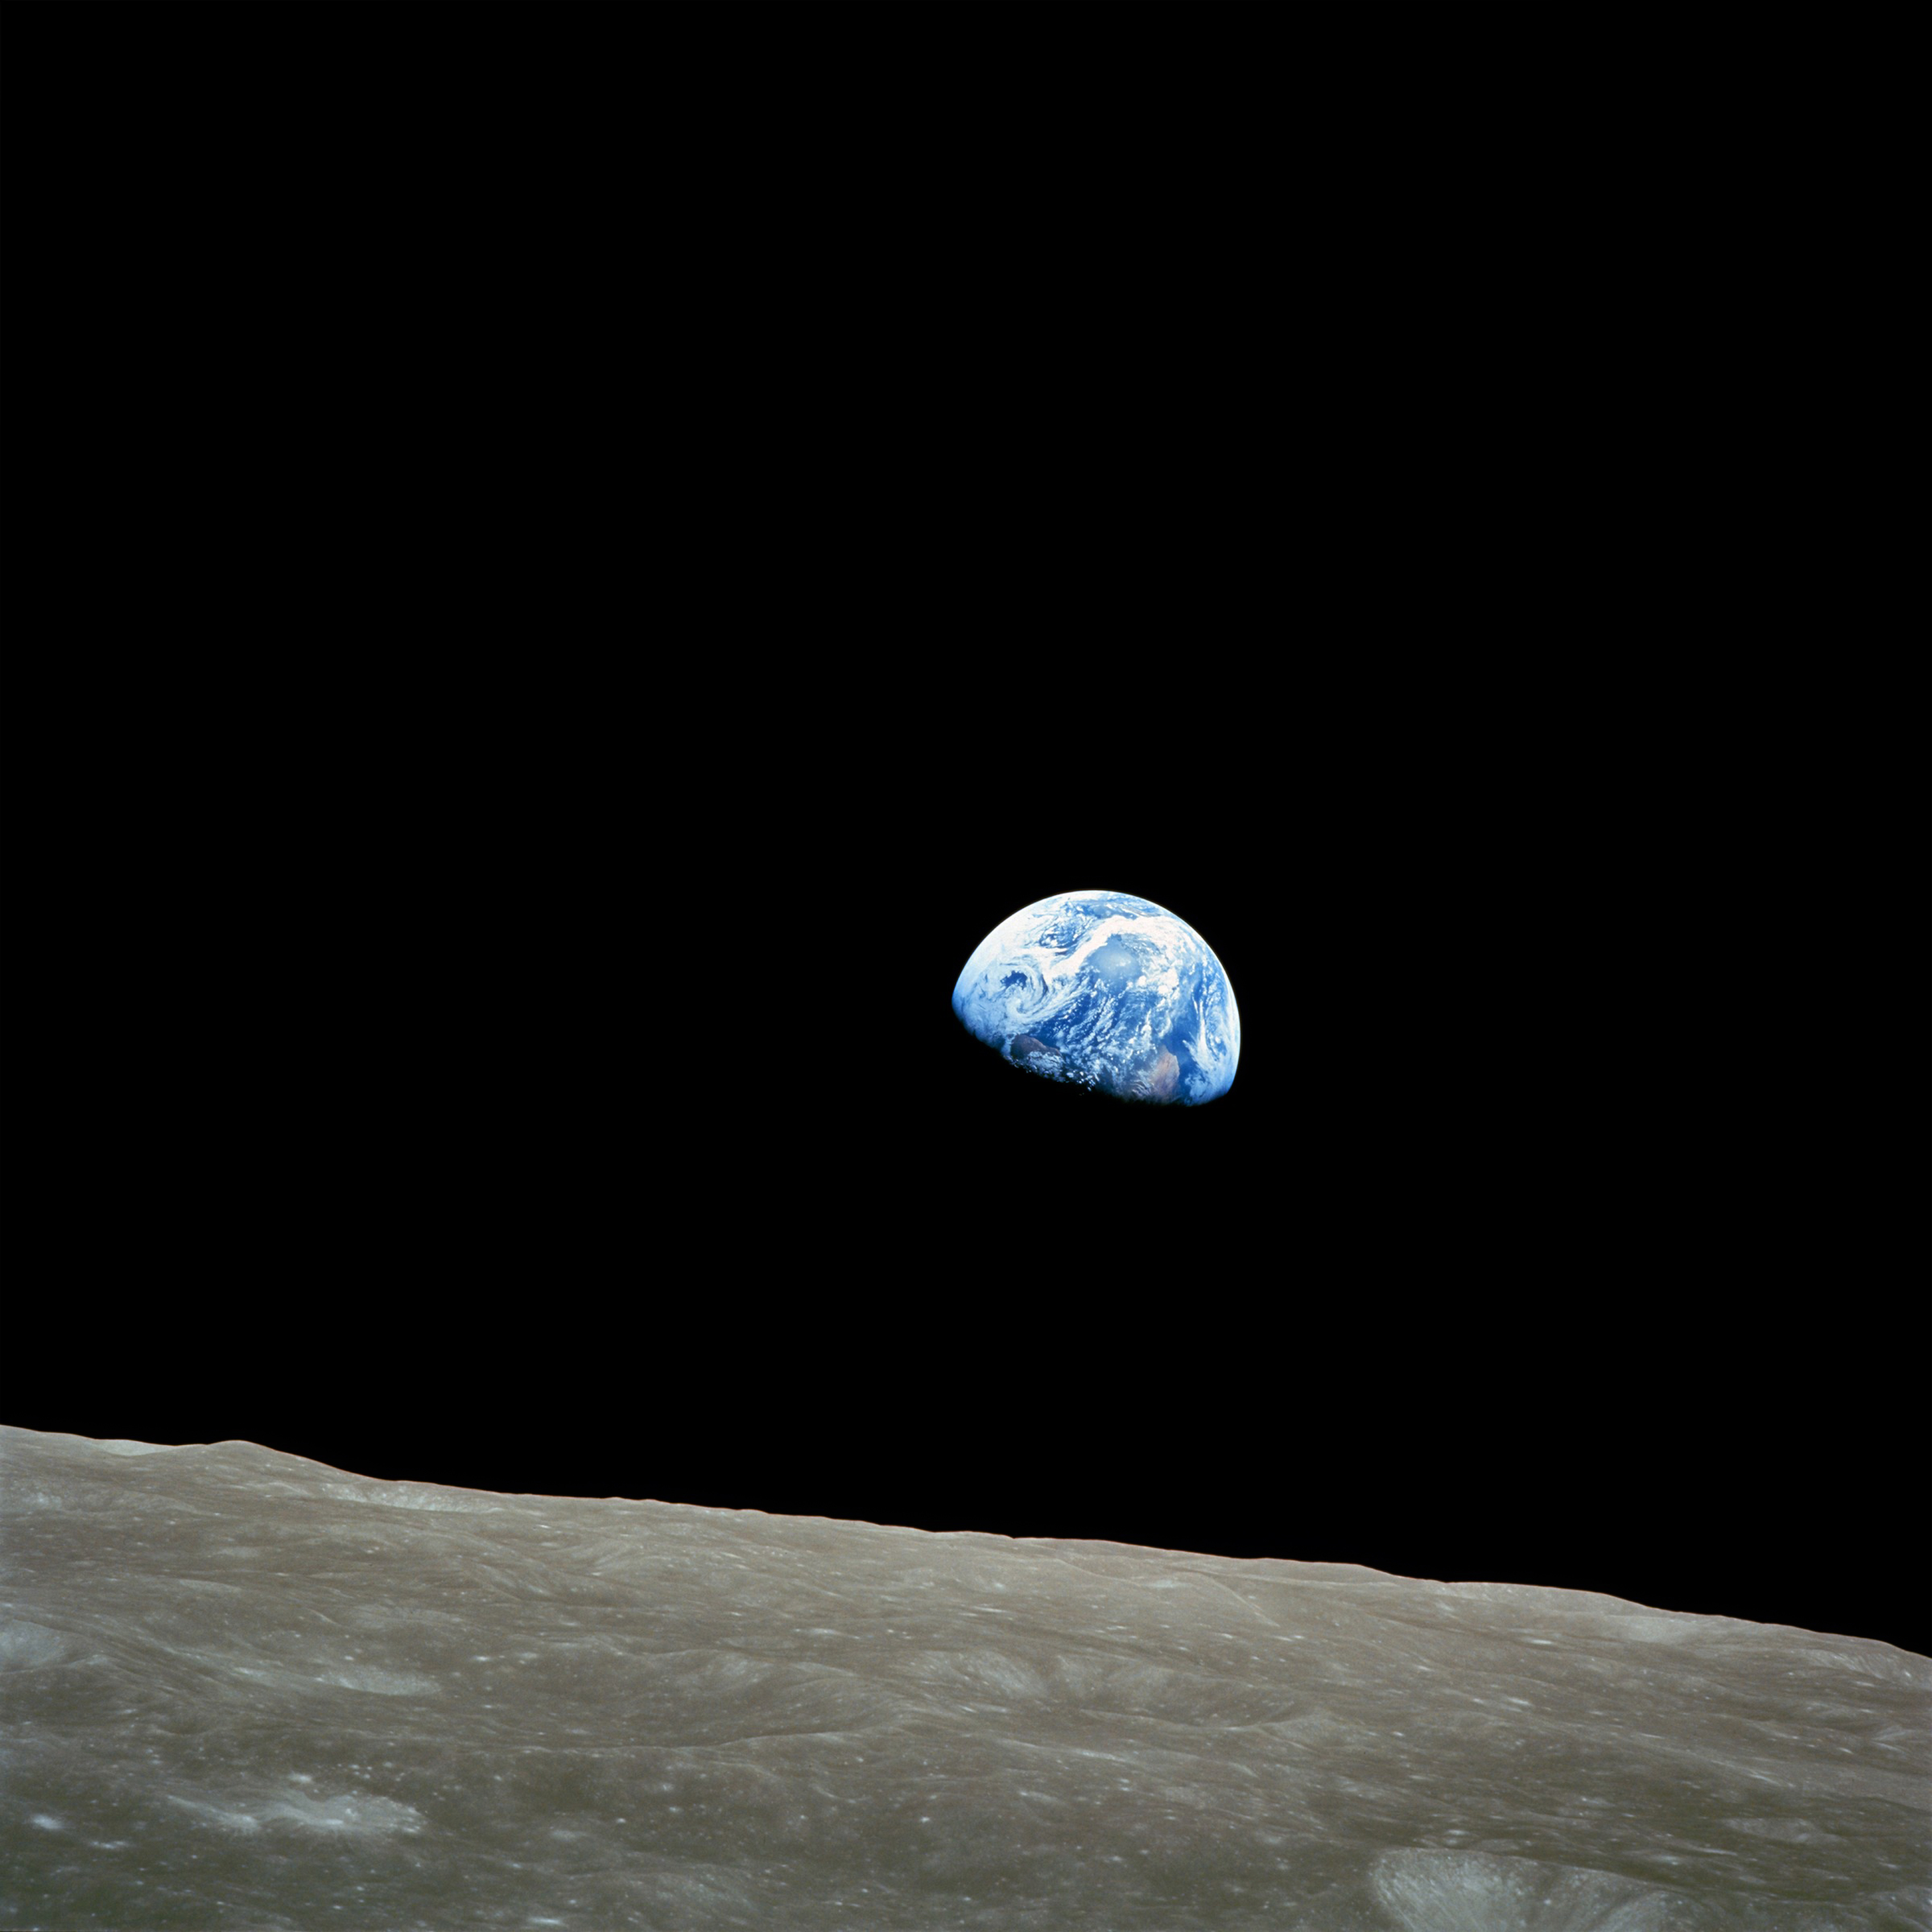 https://i0.wp.com/upload.wikimedia.org/wikipedia/commons/a/a8/NASA-Apollo8-Dec24-Earthrise.jpg